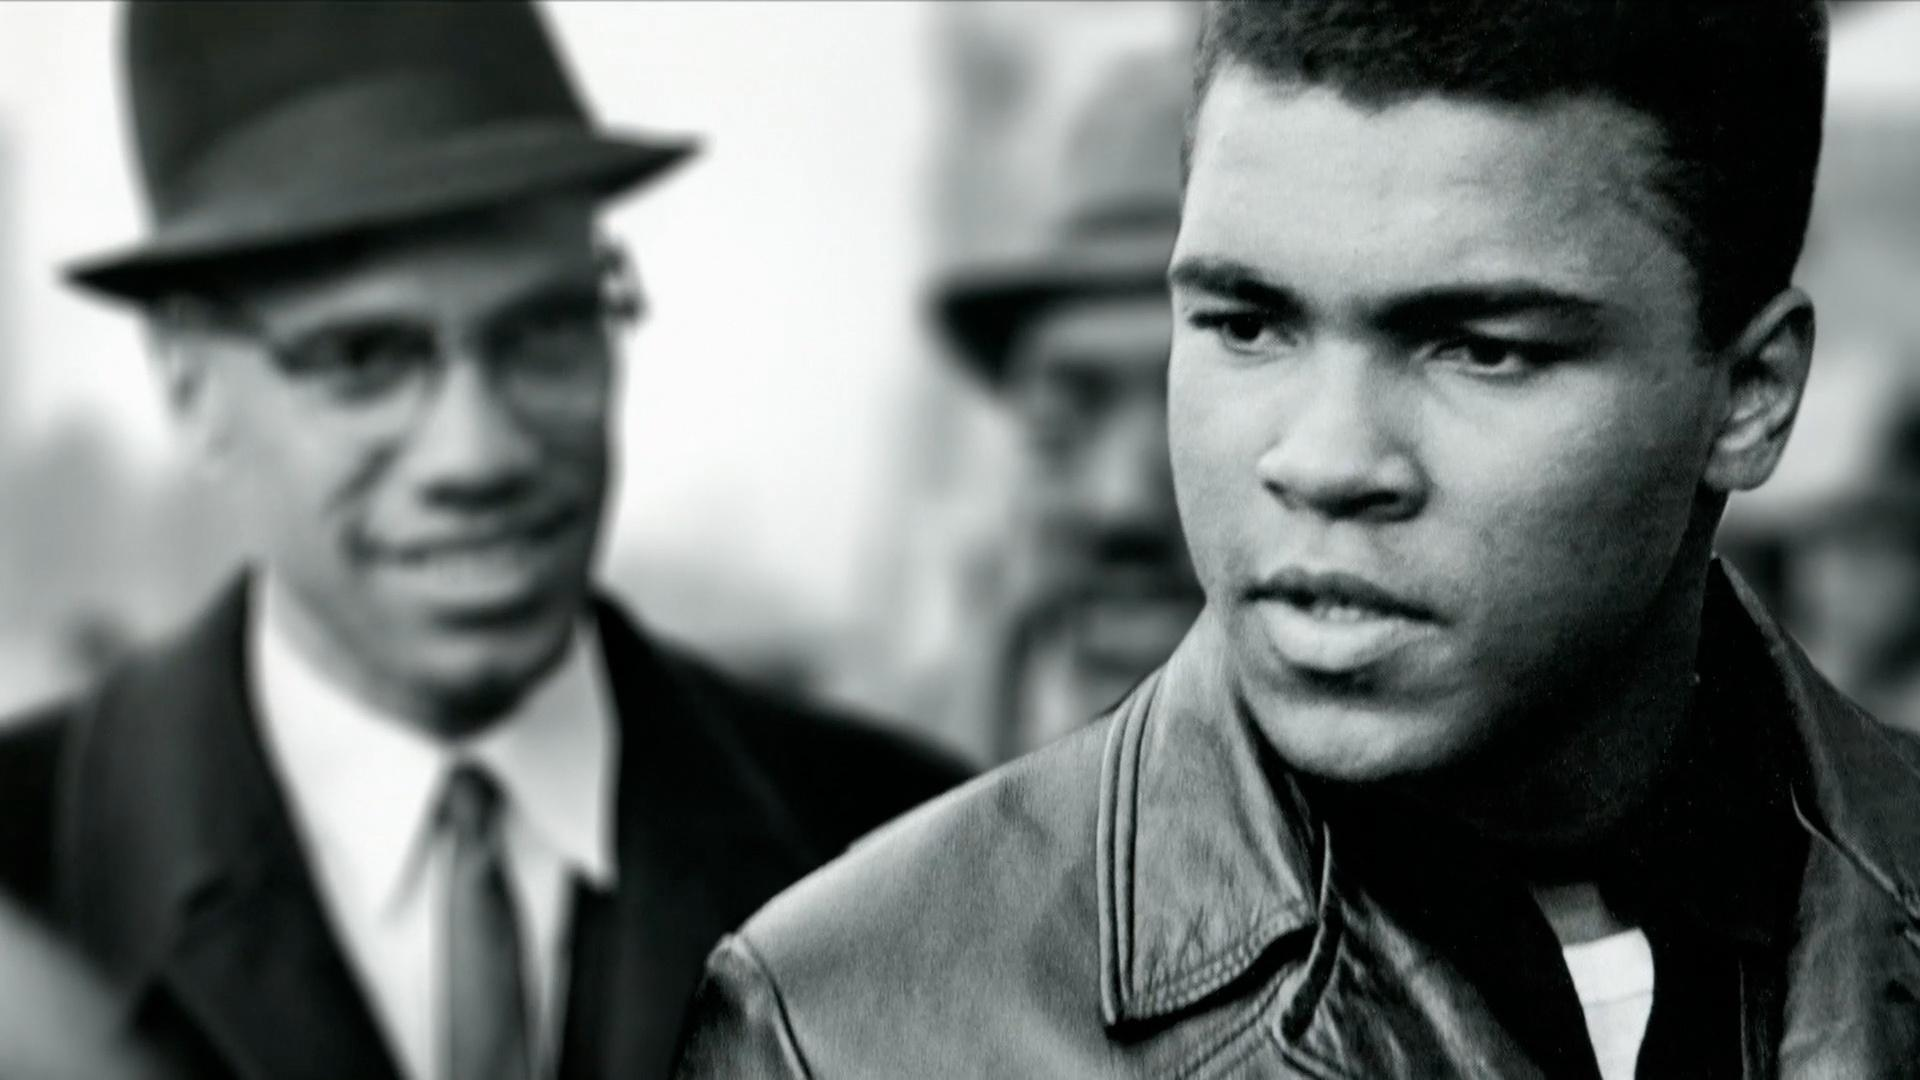 an essay on the rise and fame of muhammad ali and the islam Muhammad ali this essay muhammad ali and other 63,000+ term papers, college essay examples and free essays are available now on reviewessayscom life of muhammad islam founded by the prophet muhammad muhammad a critical analysis of polygamy in islam.